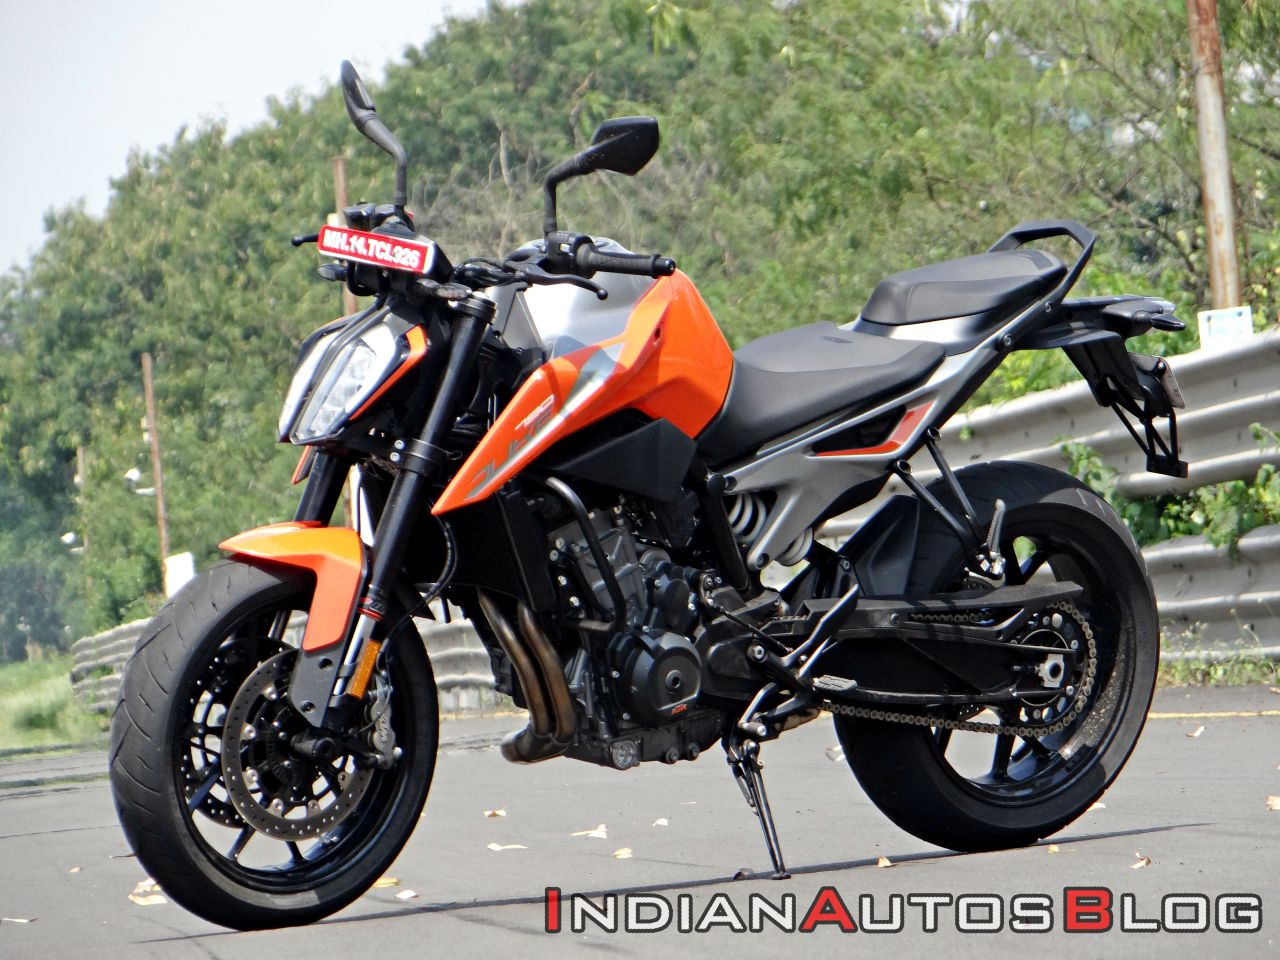 Ktm Husqvarna 500 Cc Bikes To Be Made In India Report Welcome to the official international facebook. ktm husqvarna 500 cc bikes to be made